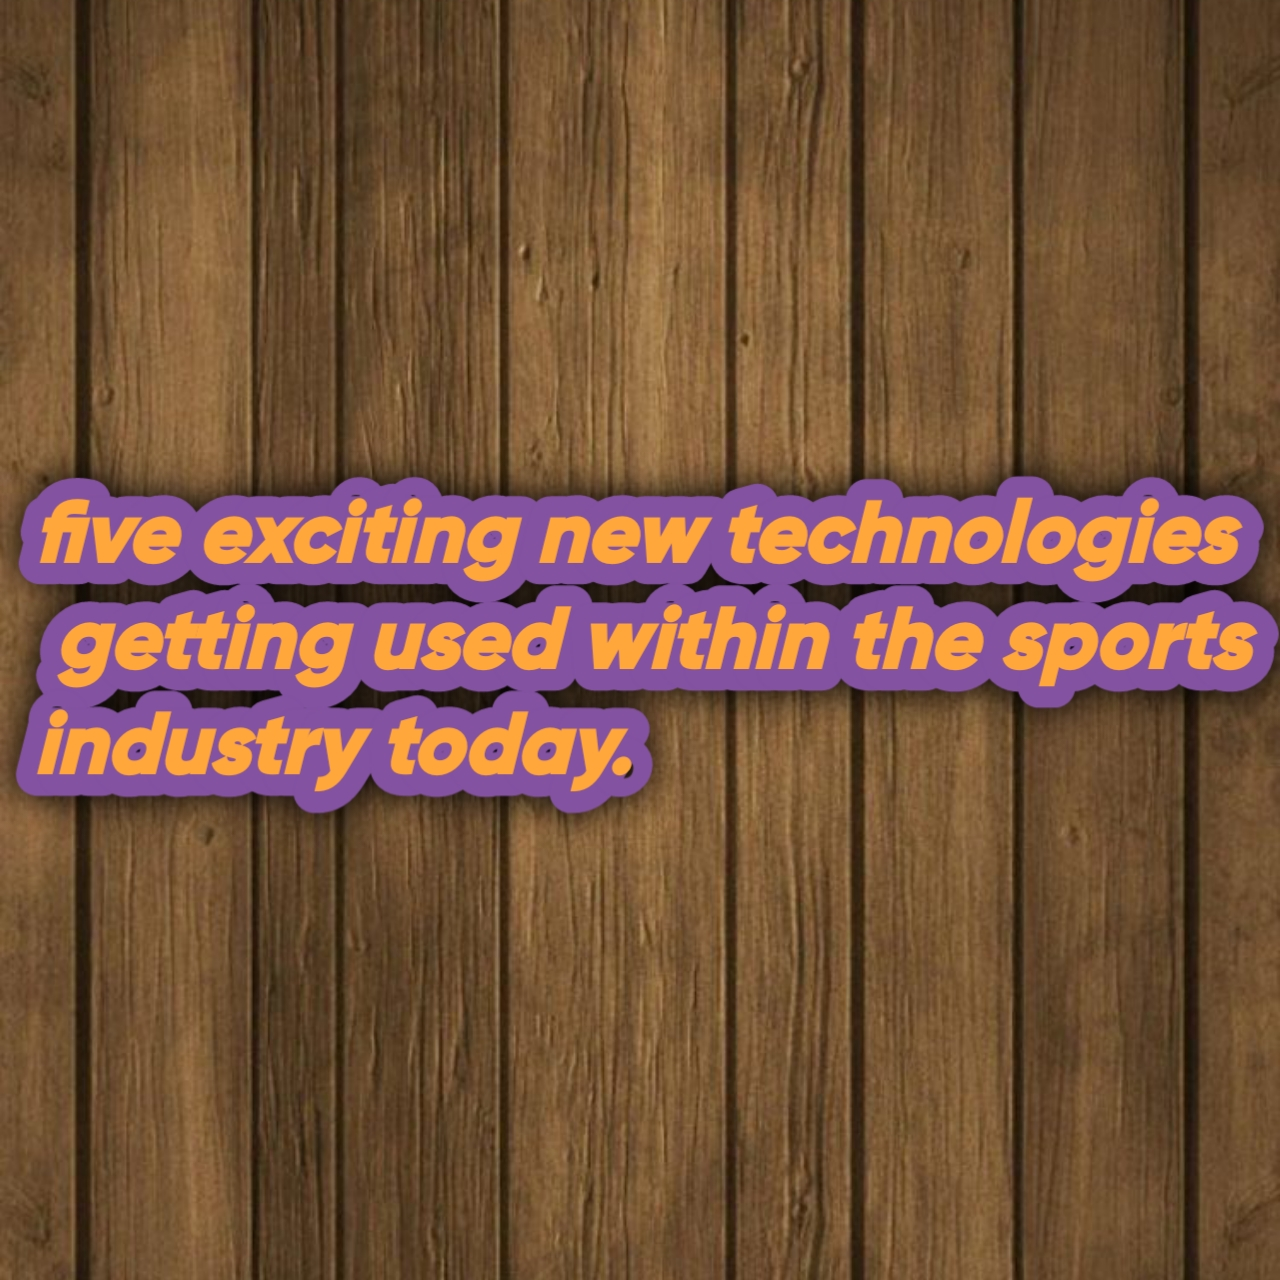 five exciting new technologies getting used within the sports industry today.